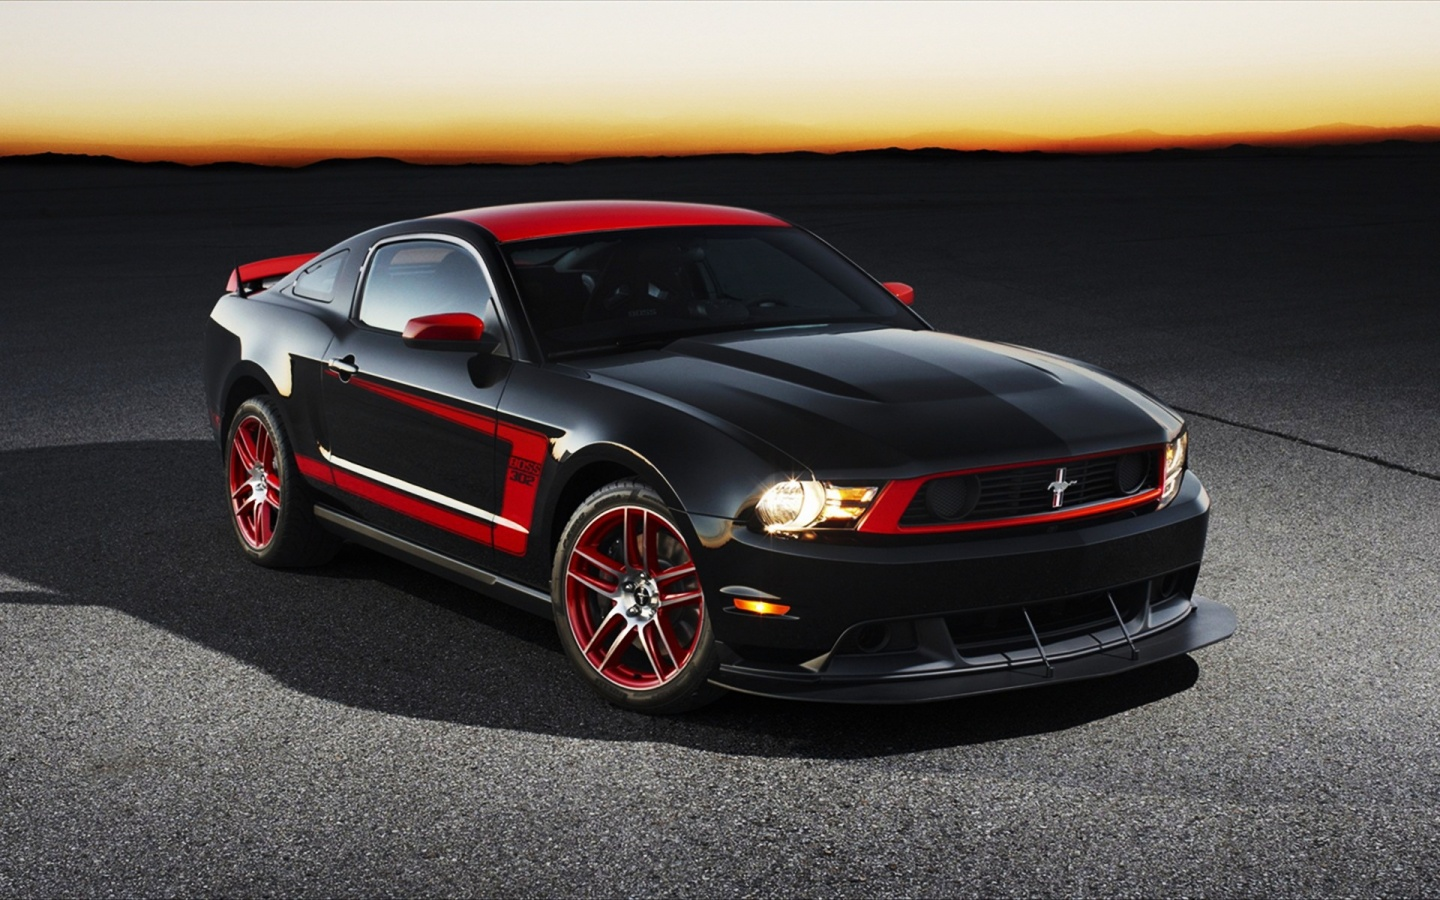 2012 Ford Mustang Boss Wallpapers HD Wallpapers 1440x900